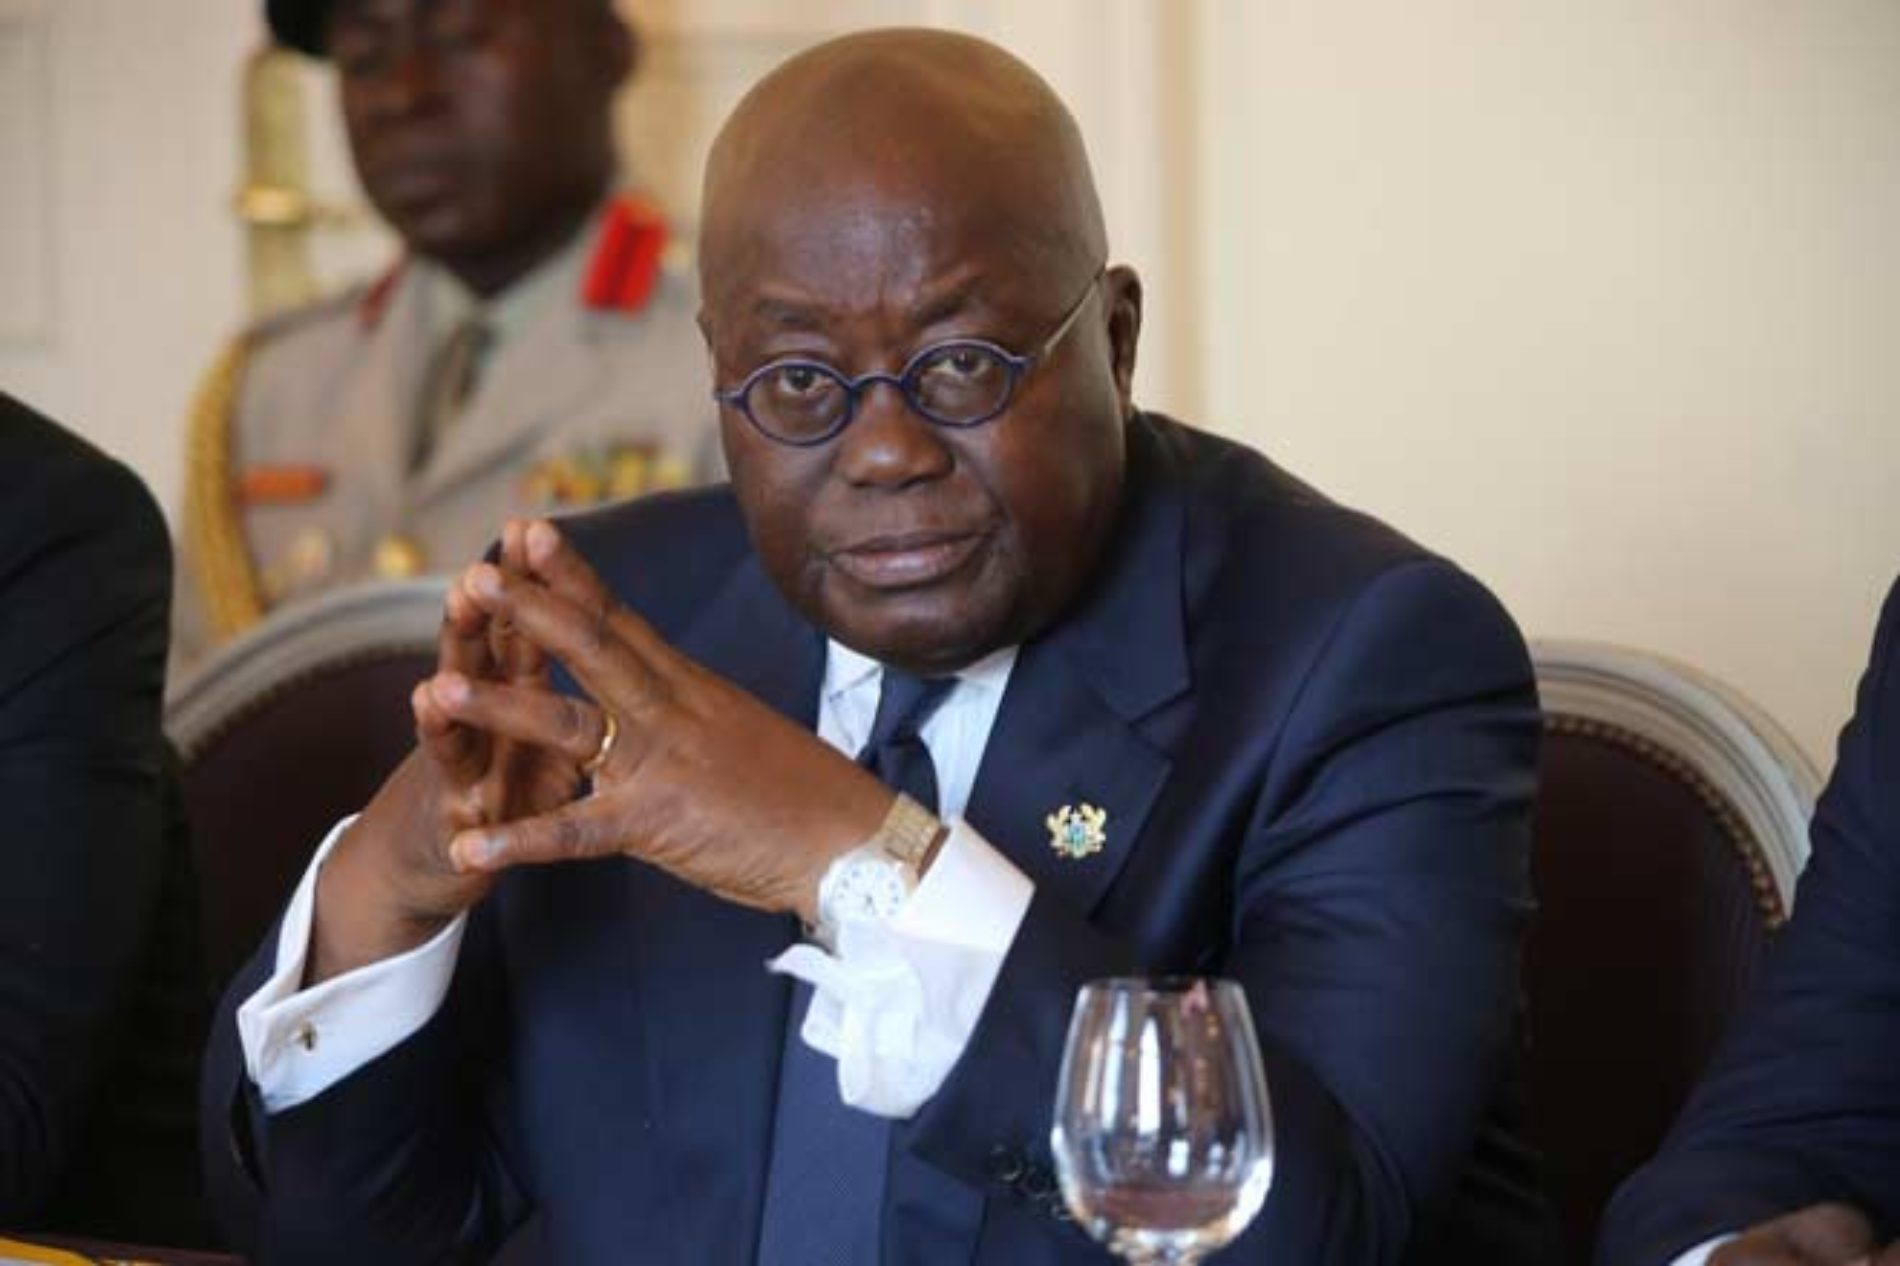 Ghanaians are reacting to President Nana Akufo-Addo's indefinite stance on legalization of homosexuality and it is mostly negative